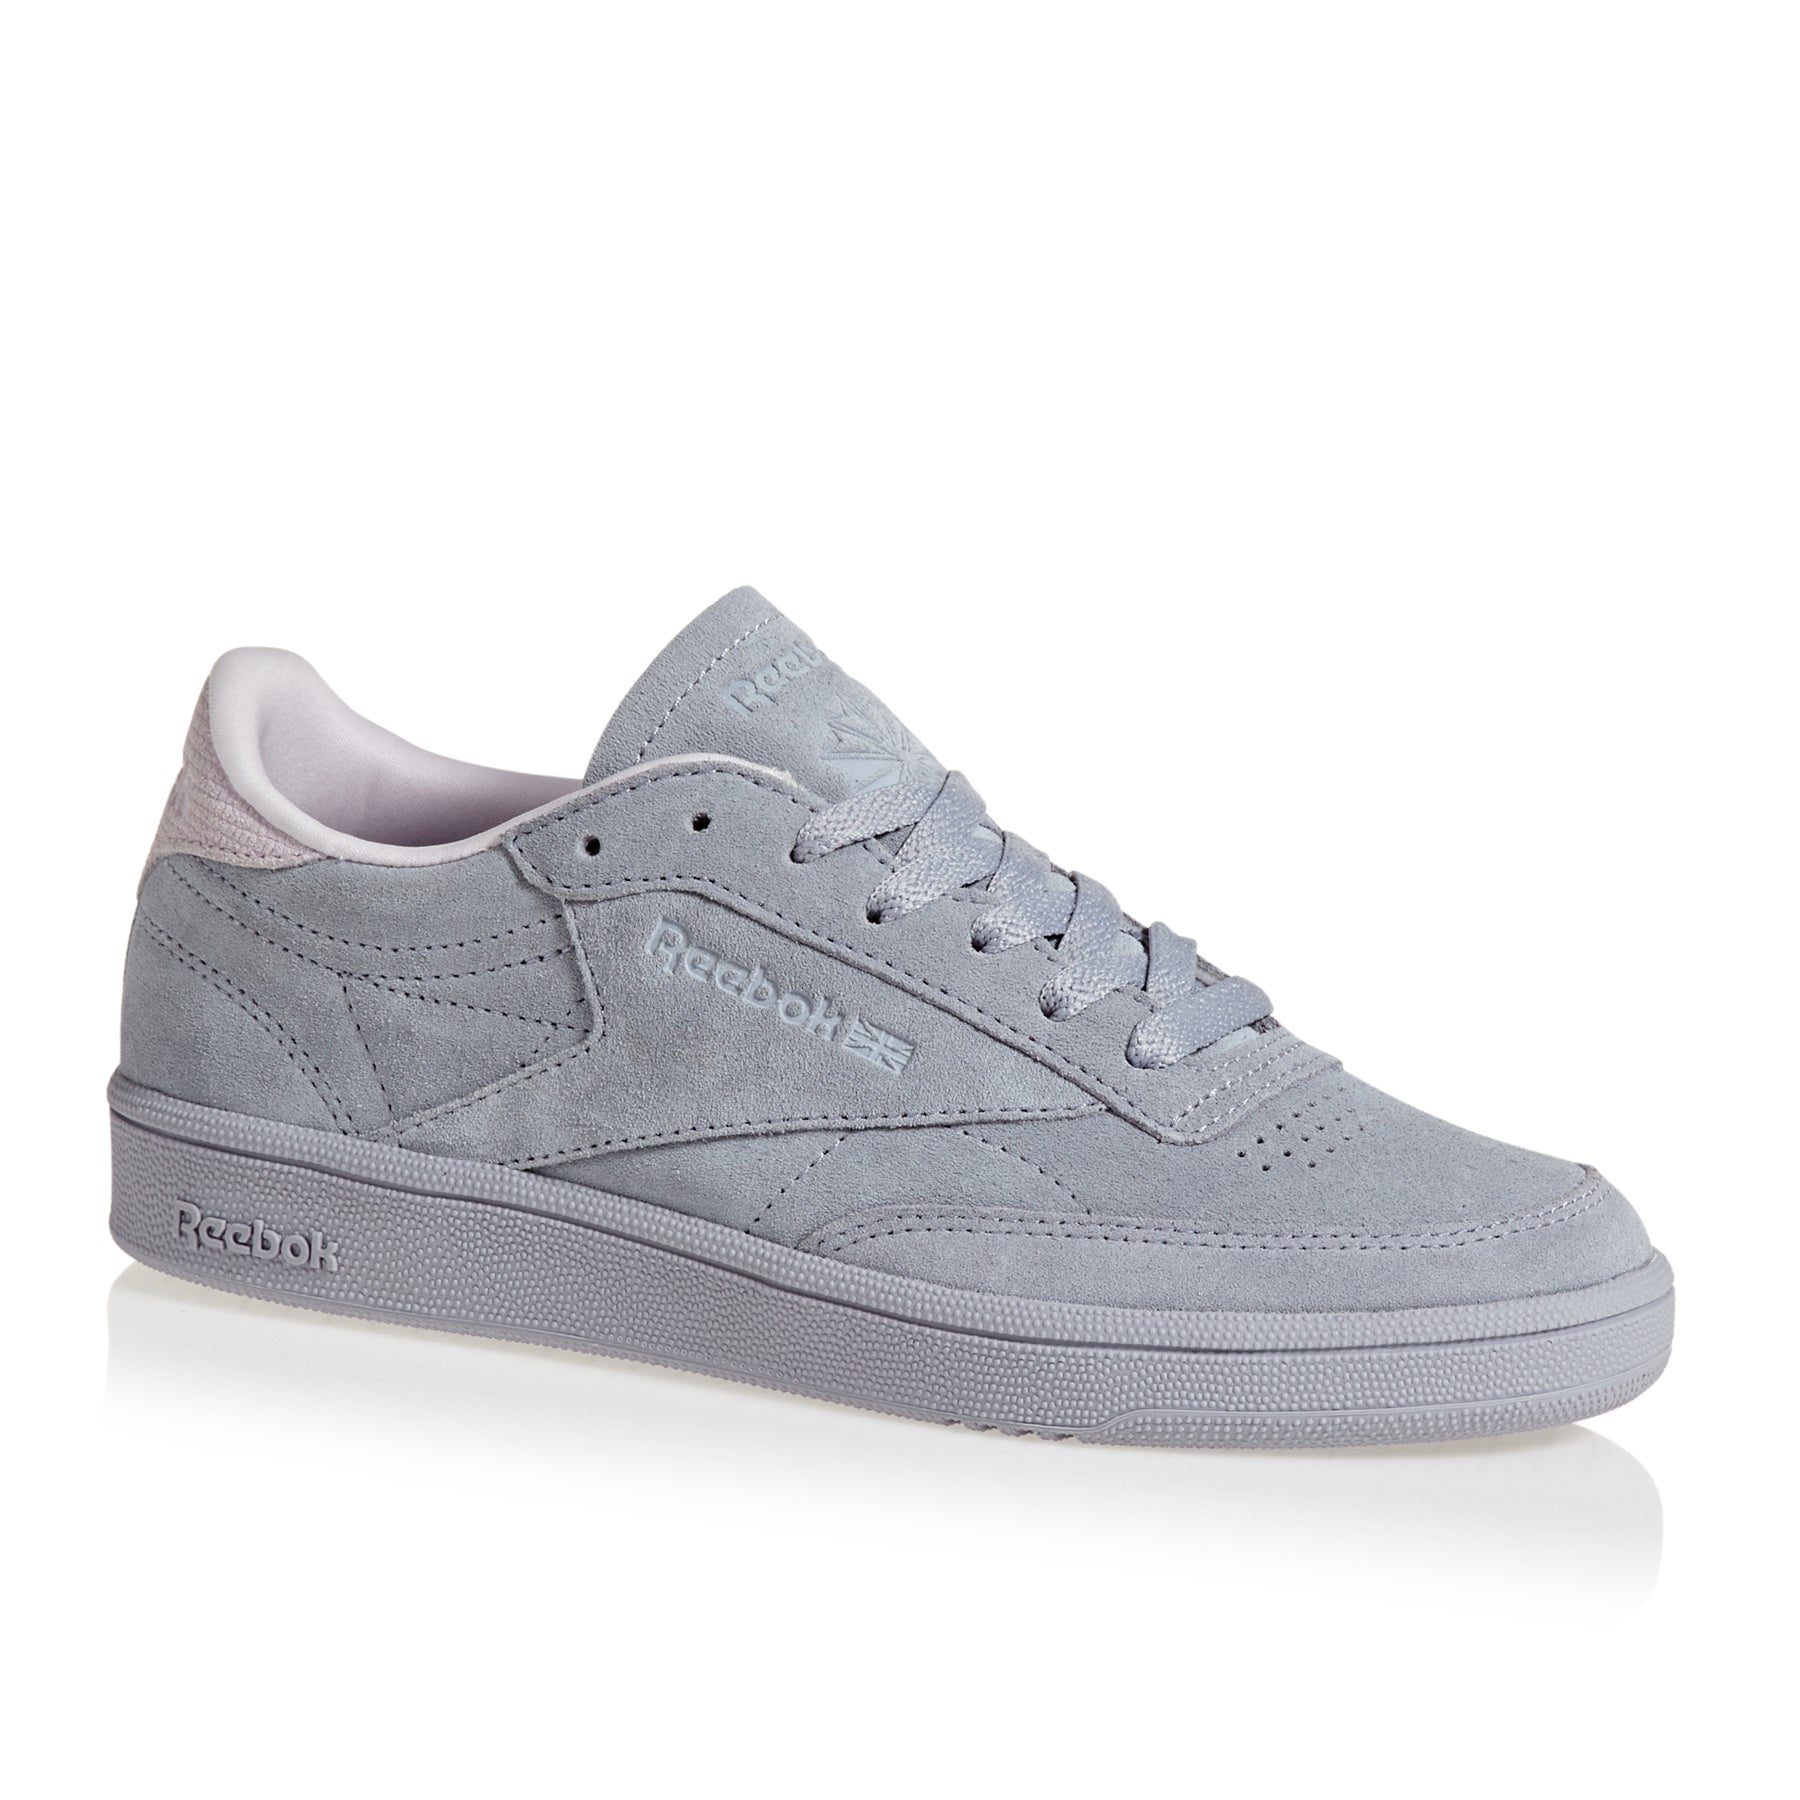 Reebok Club C 85 Womens Shoes - Purple Fog / Quartz